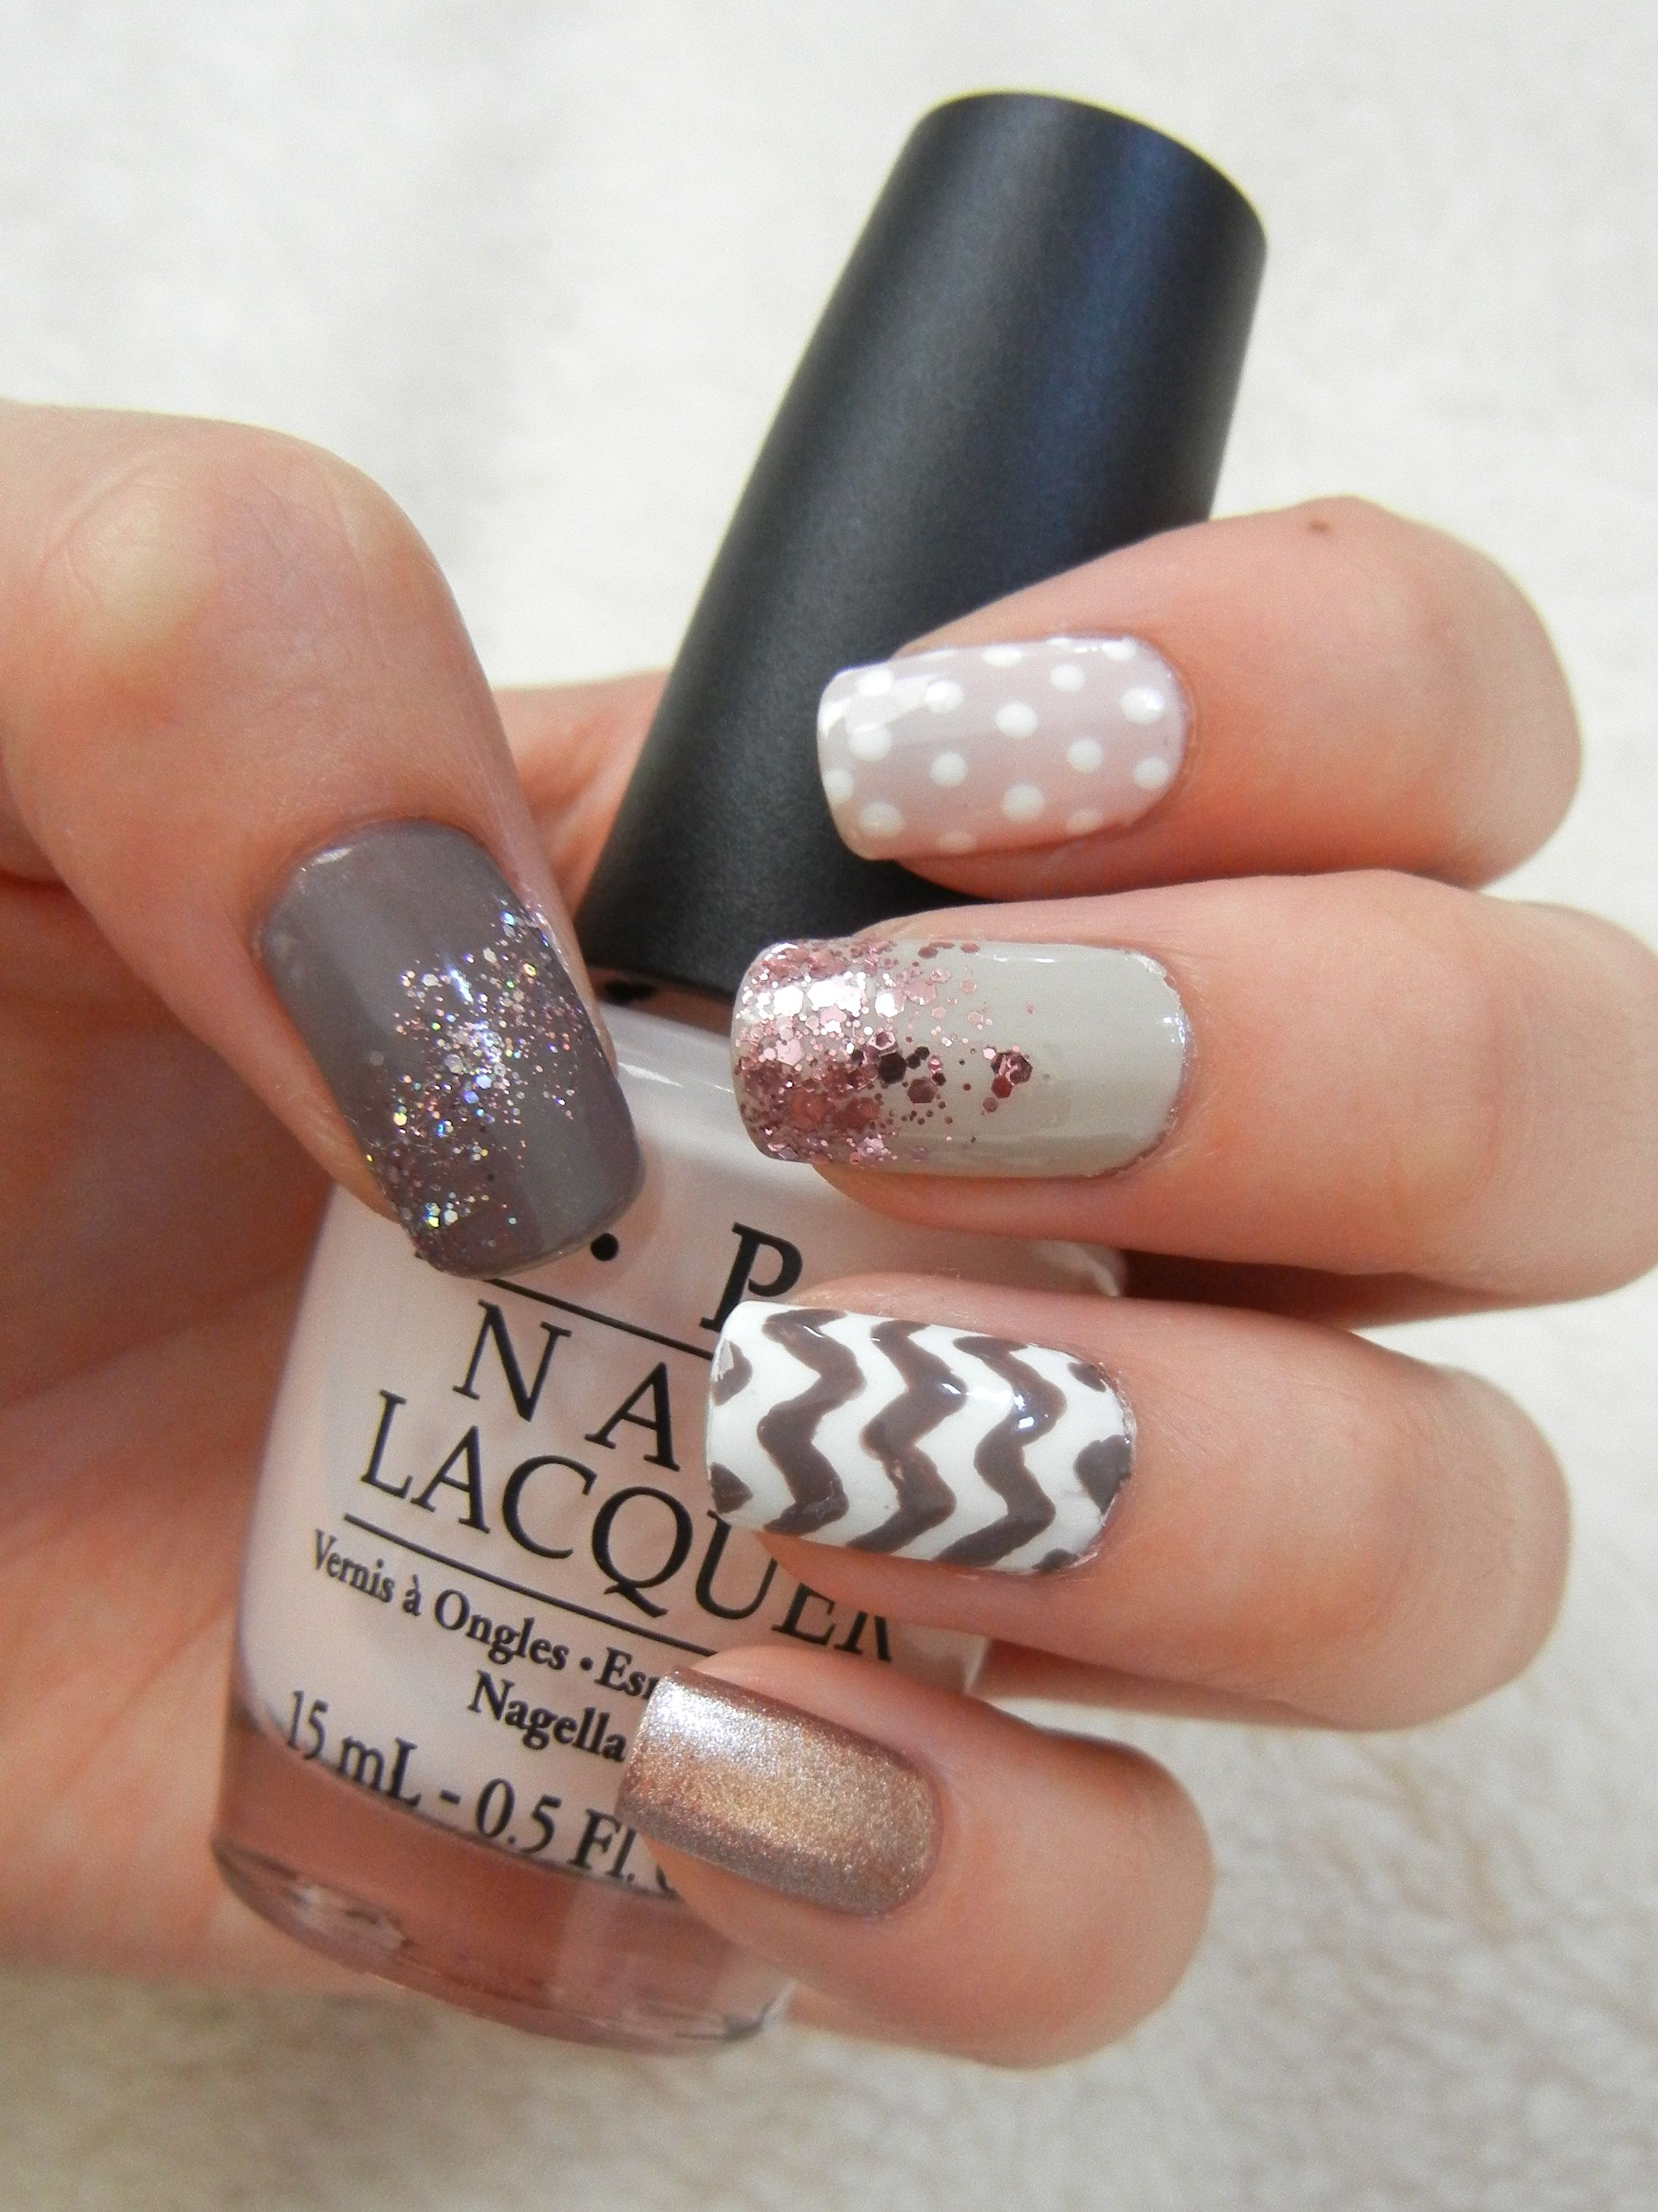 Girly Nail Art One Of My Faves Ive Done My Nail Artnotds